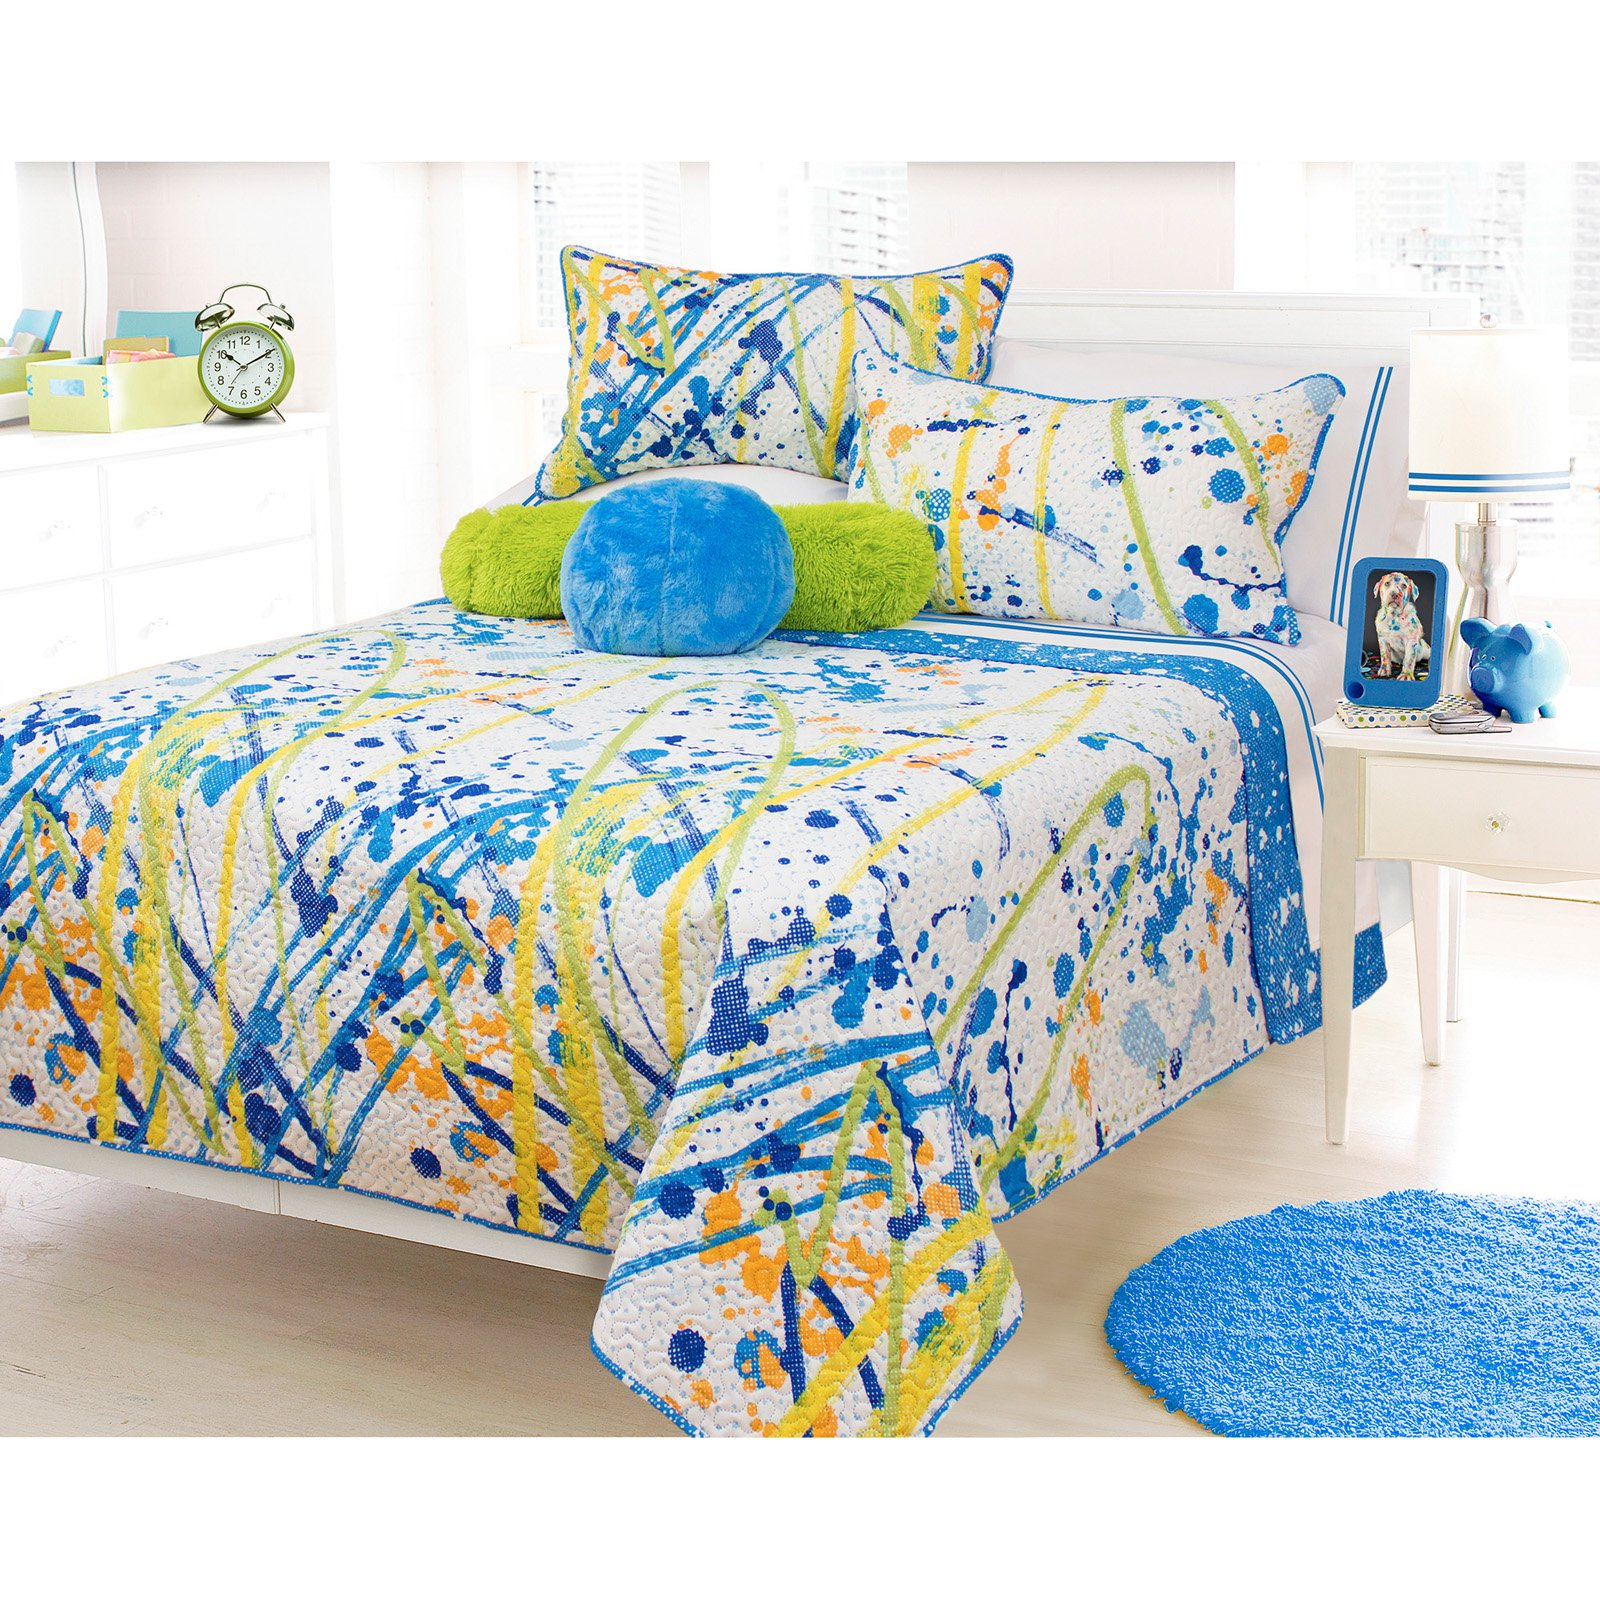 Splash Quilt Set by Safdie and Co